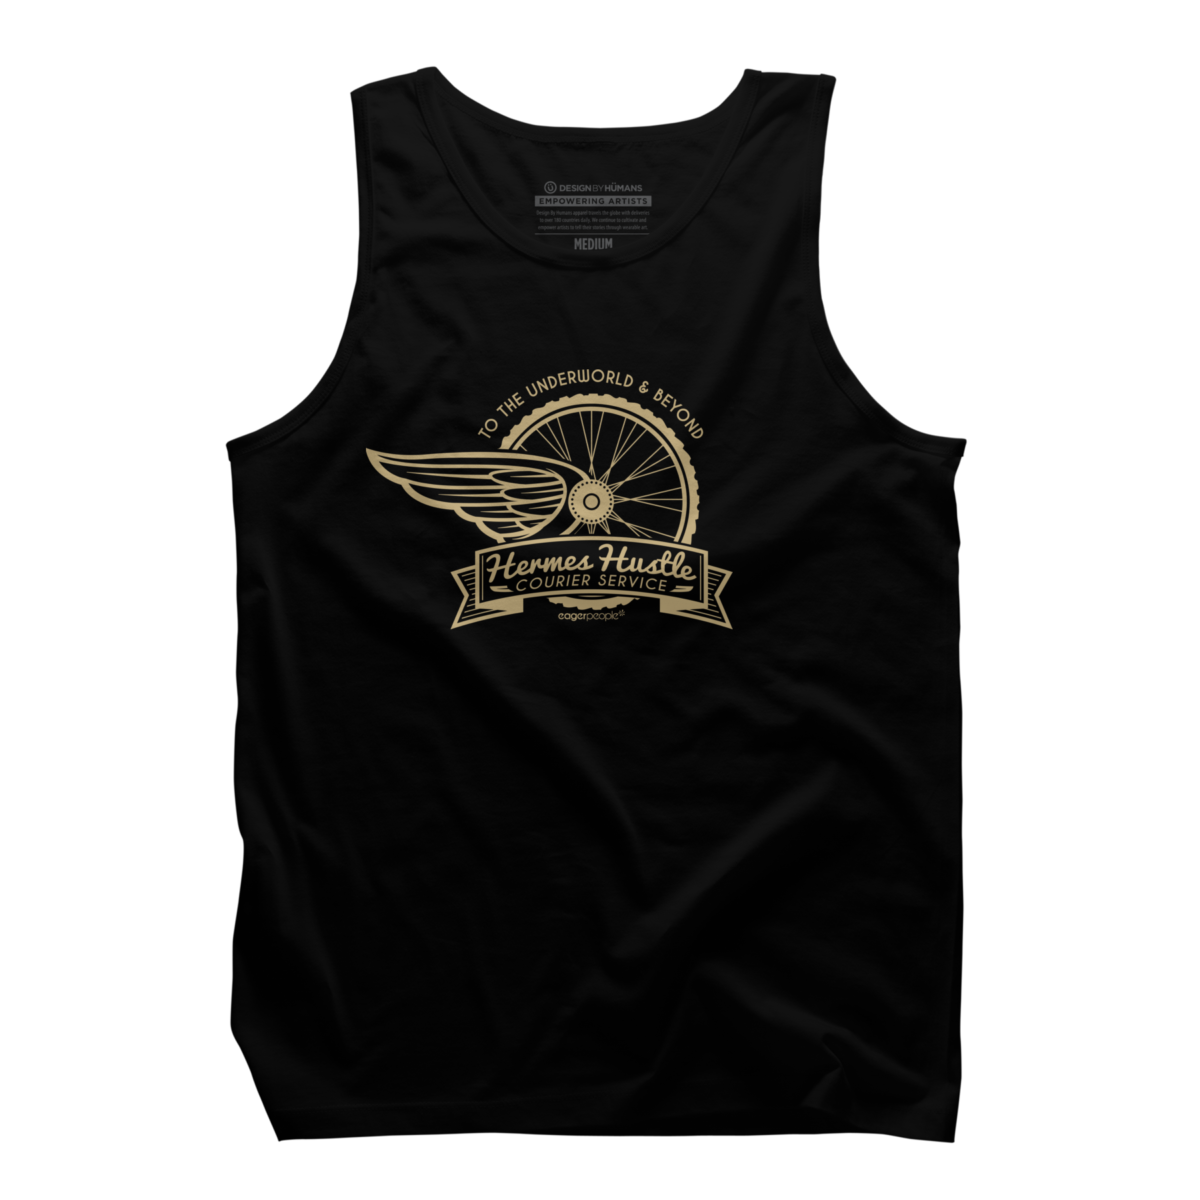 Hermes Hustle Courier Service Men's Tank Top Hermes Hustle Courier Service is a cozy ring spun cotton Black designed by eagerpeople. This tank top design is featured in bicycle, art styles, retro, themes, transportation, typography, vintage designs. Shop DesignByHumans.com for the best selection of cool graphic tees, tank tops, sweatshirts, notebooks, phone cases, and art prints.